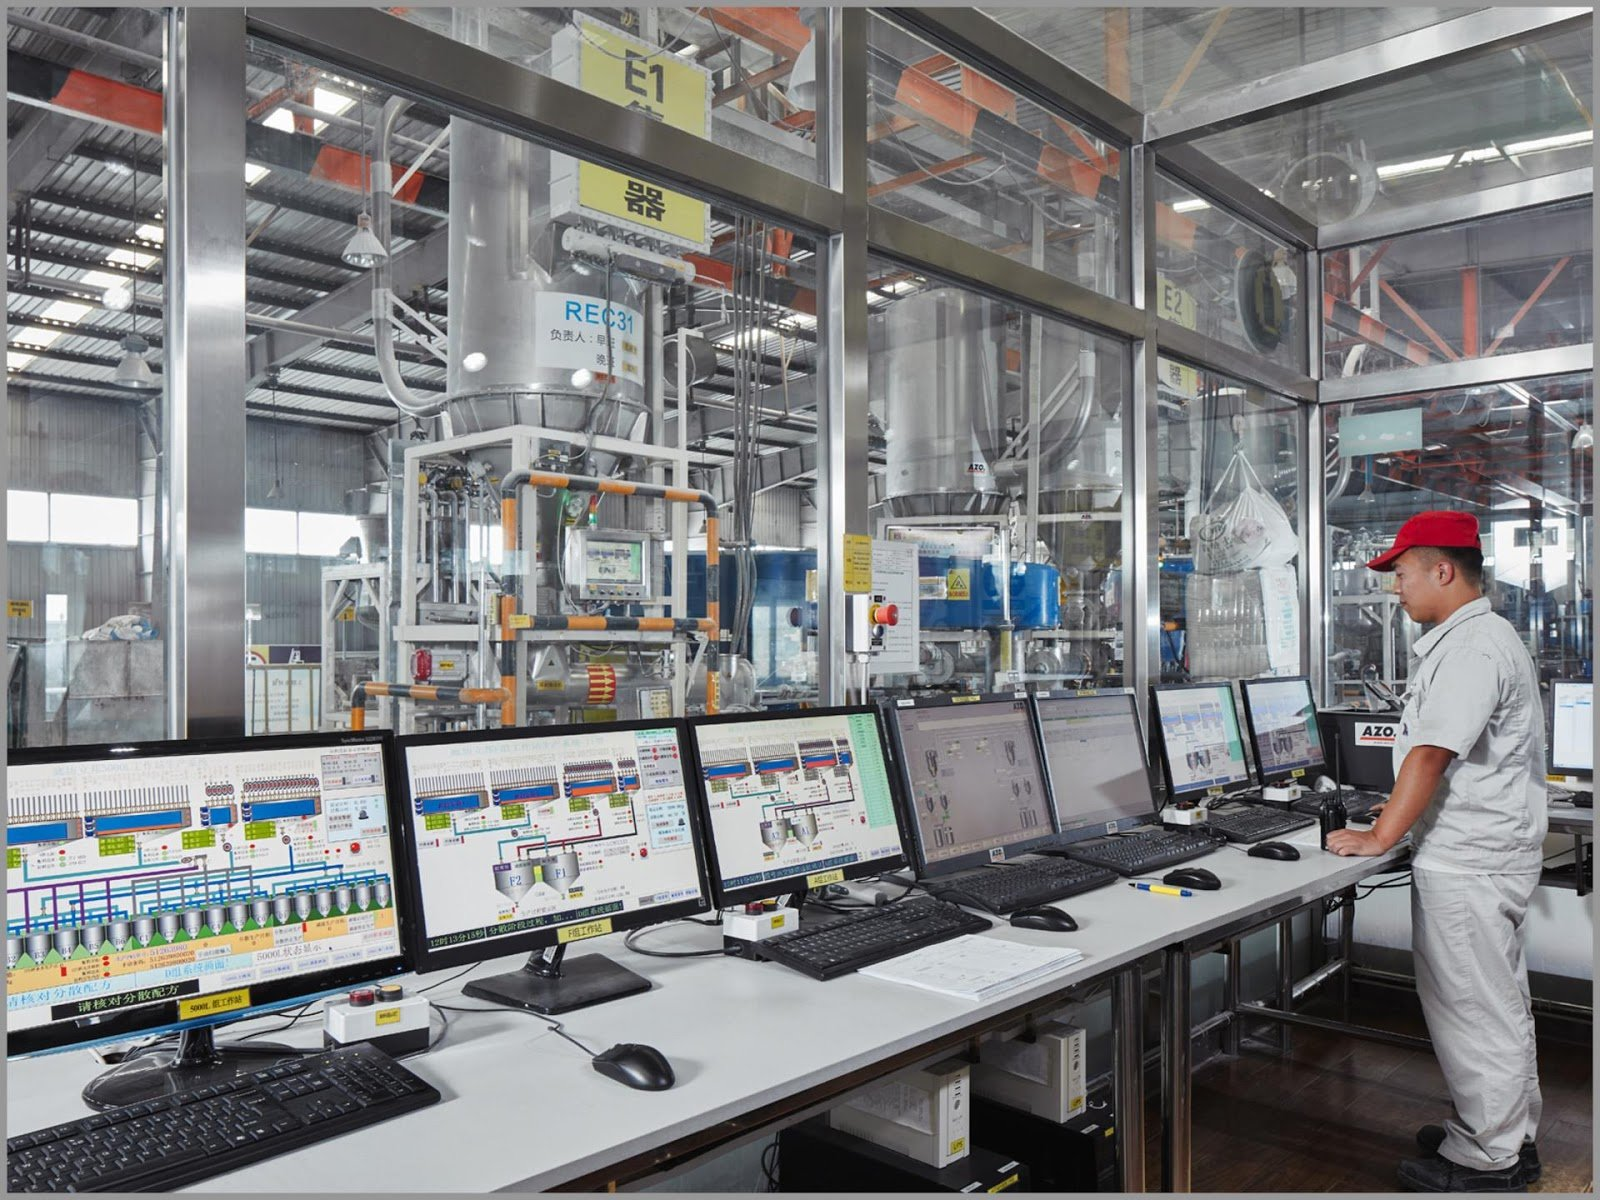 image4 (1)Operator leveraging advanced manufacturing control systems to minimize downtime and bad product